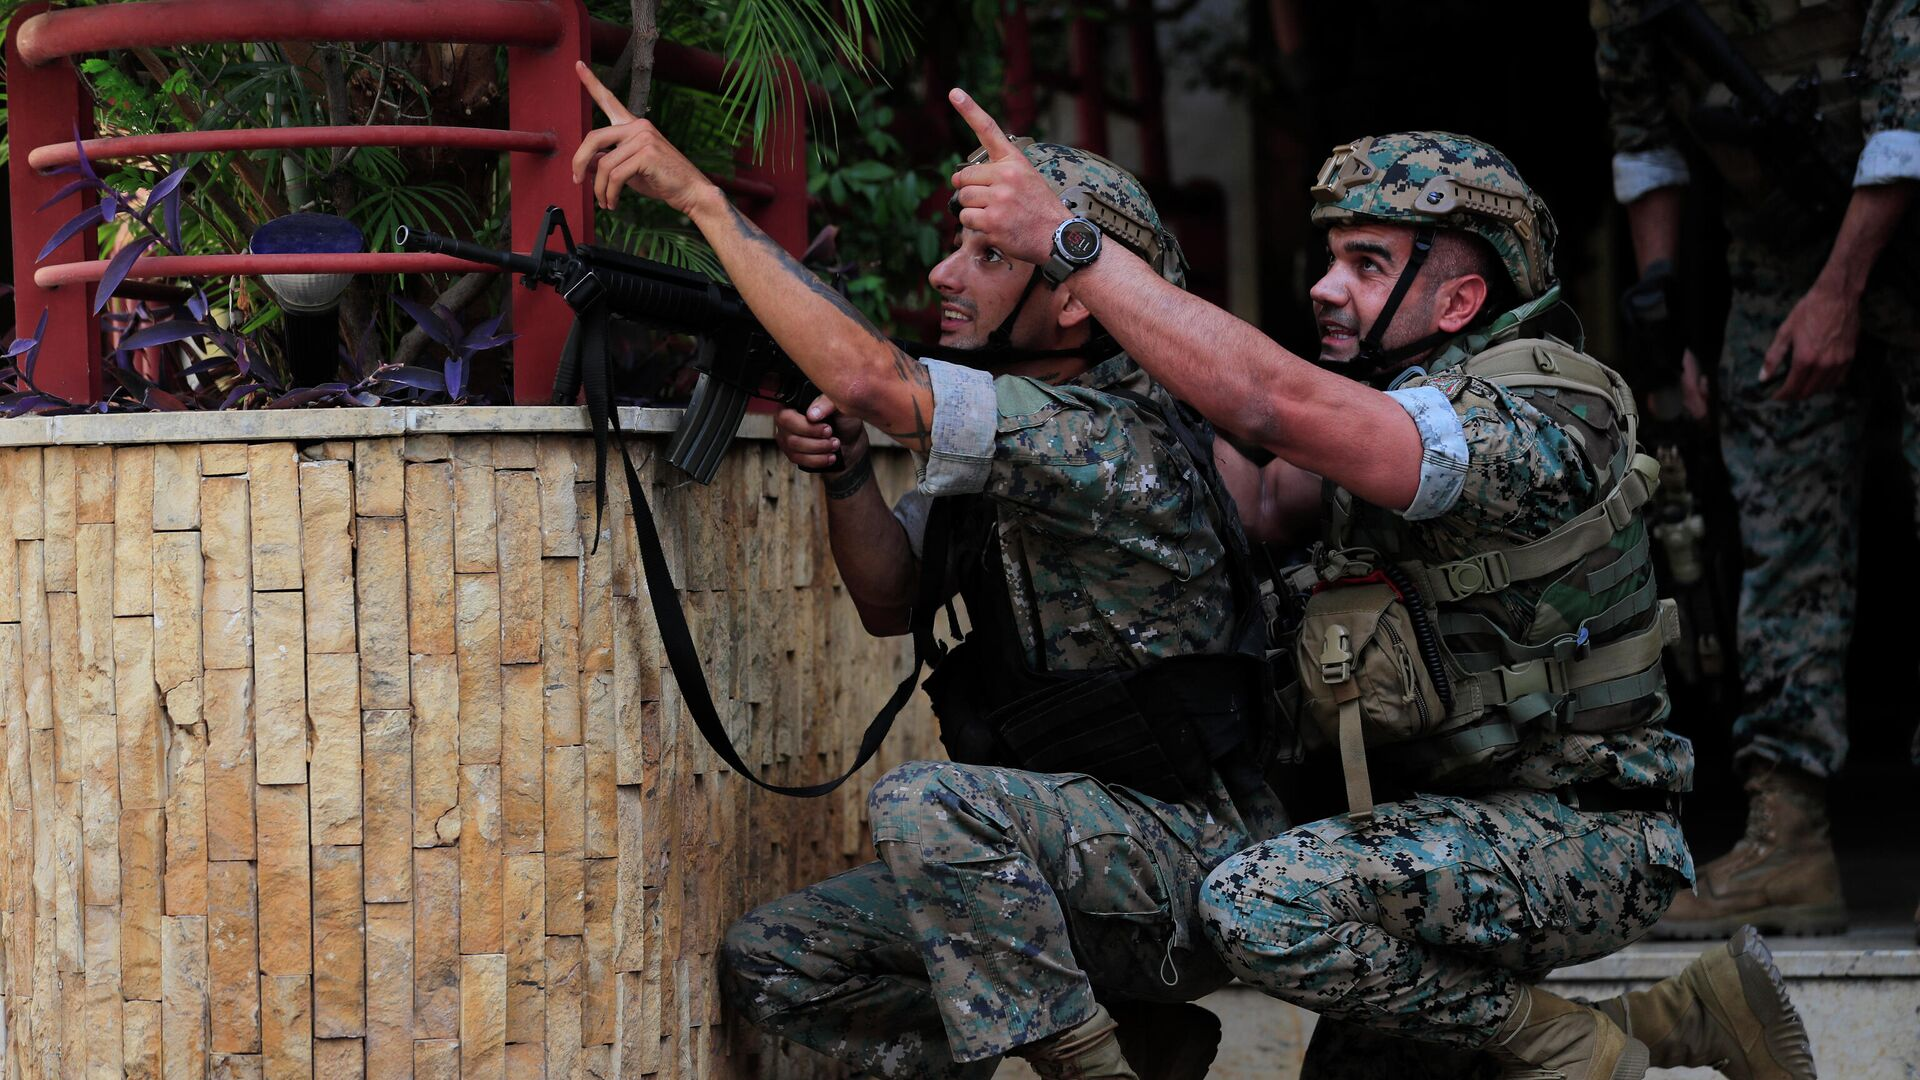 Lebanese security forces react to gunfire during a protest in Beirut, Lebanon, Thursday, Oct. 14, 2021 - Sputnik International, 1920, 14.10.2021